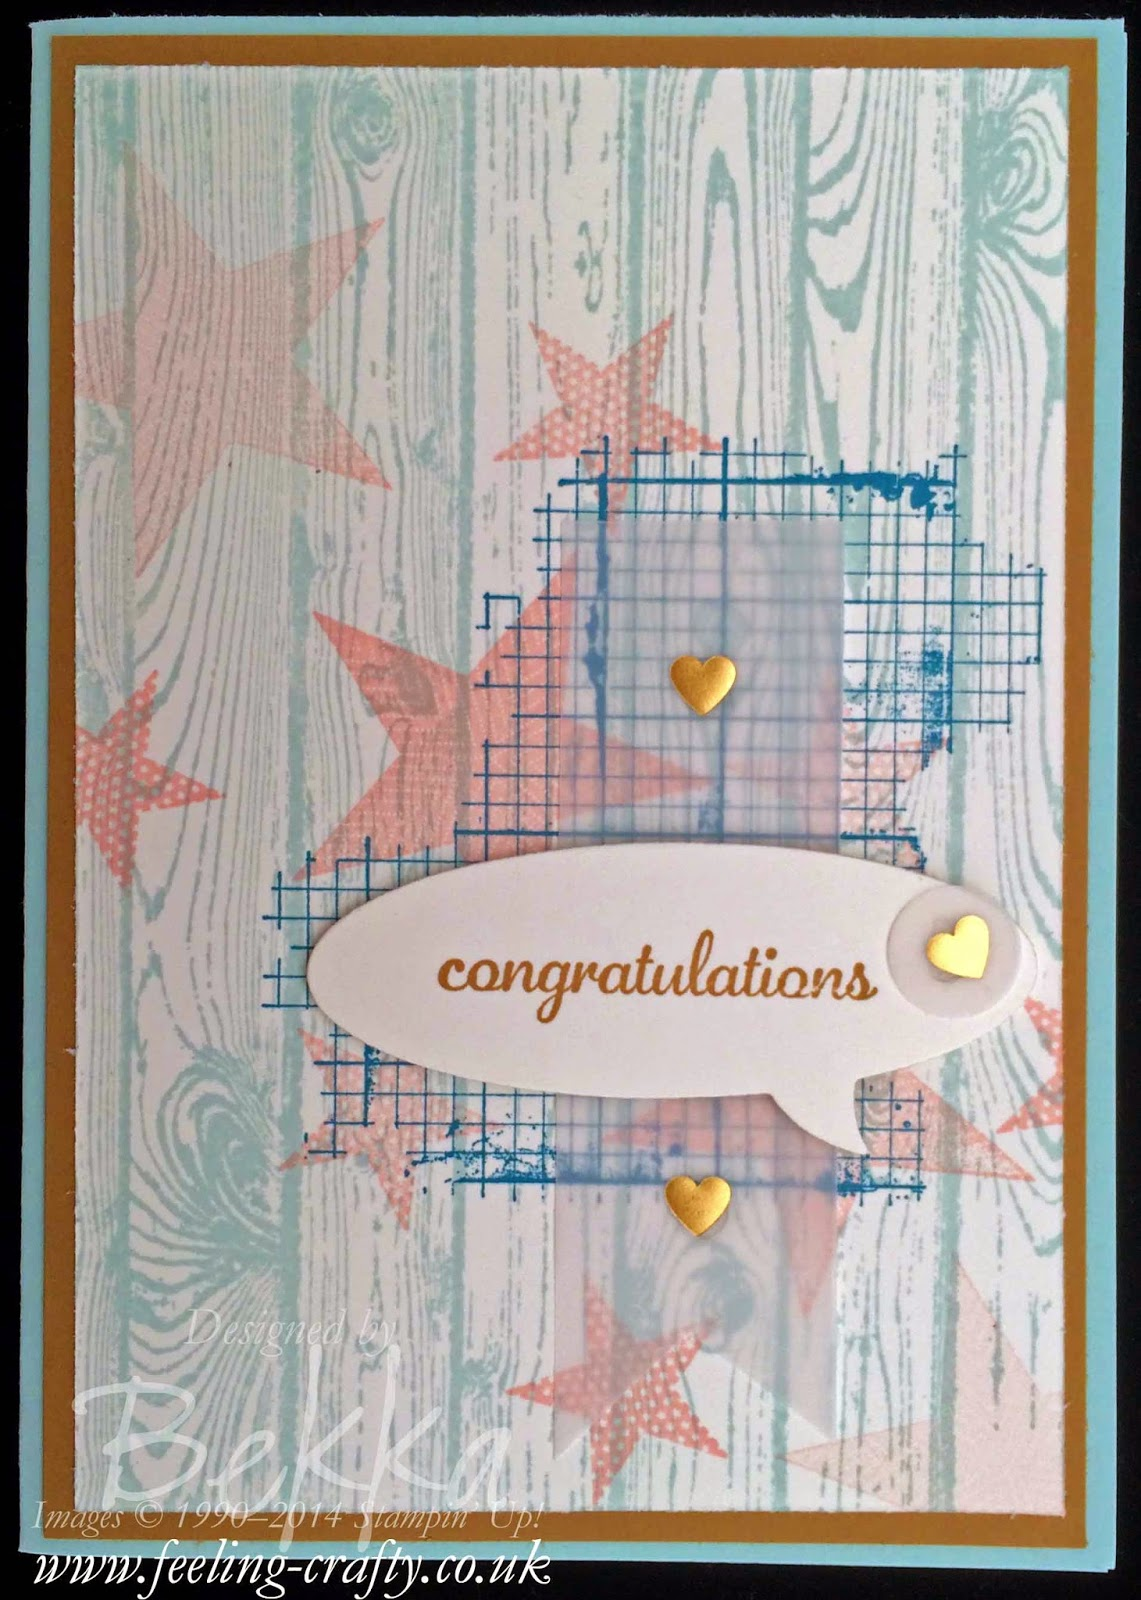 Congratulations Card made with Stampin' Up! Supplies - check this blog for lots of great ideas